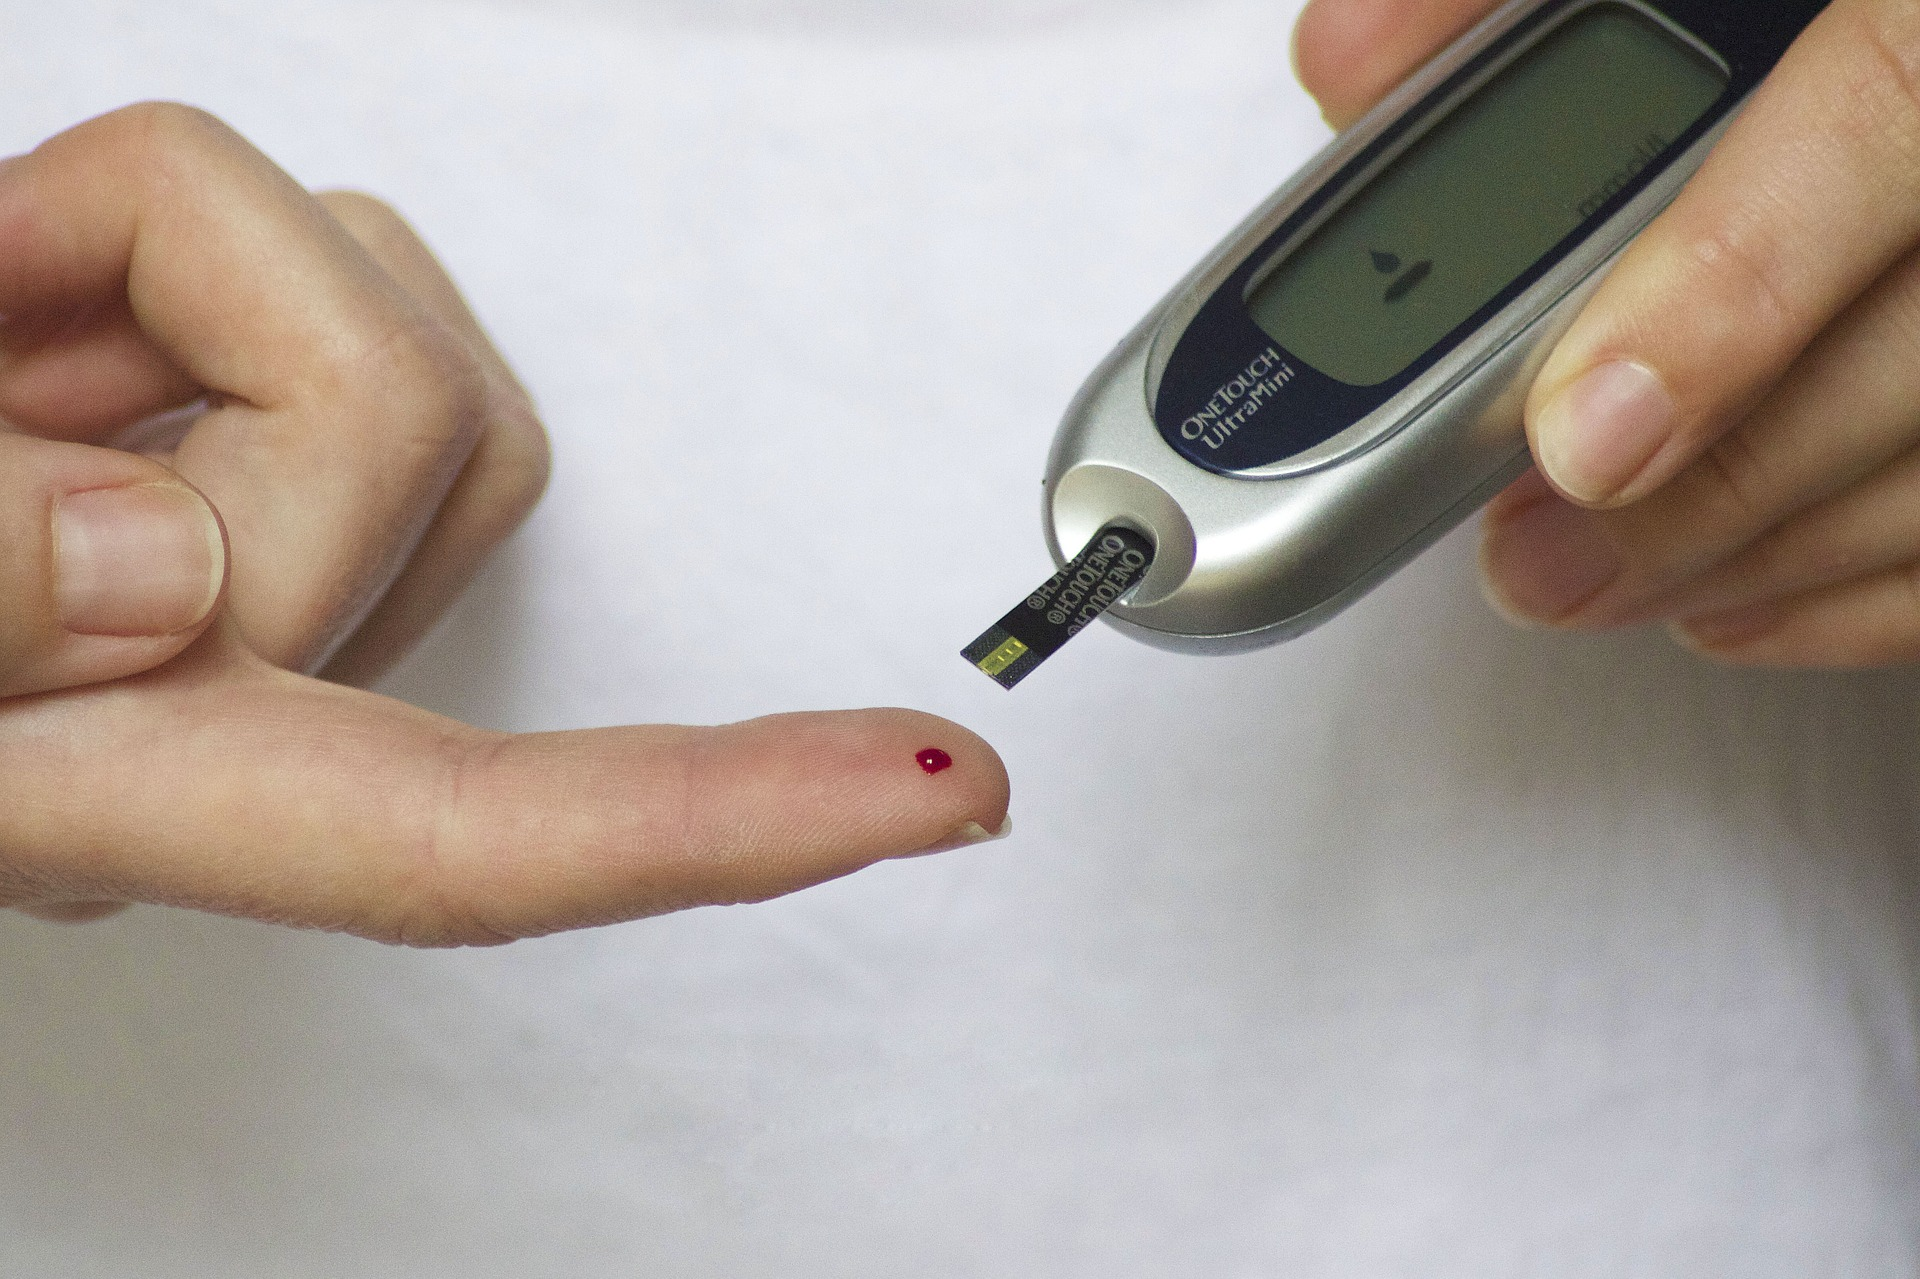 New Medicare perk for diabetes prevention stumbles at rollout